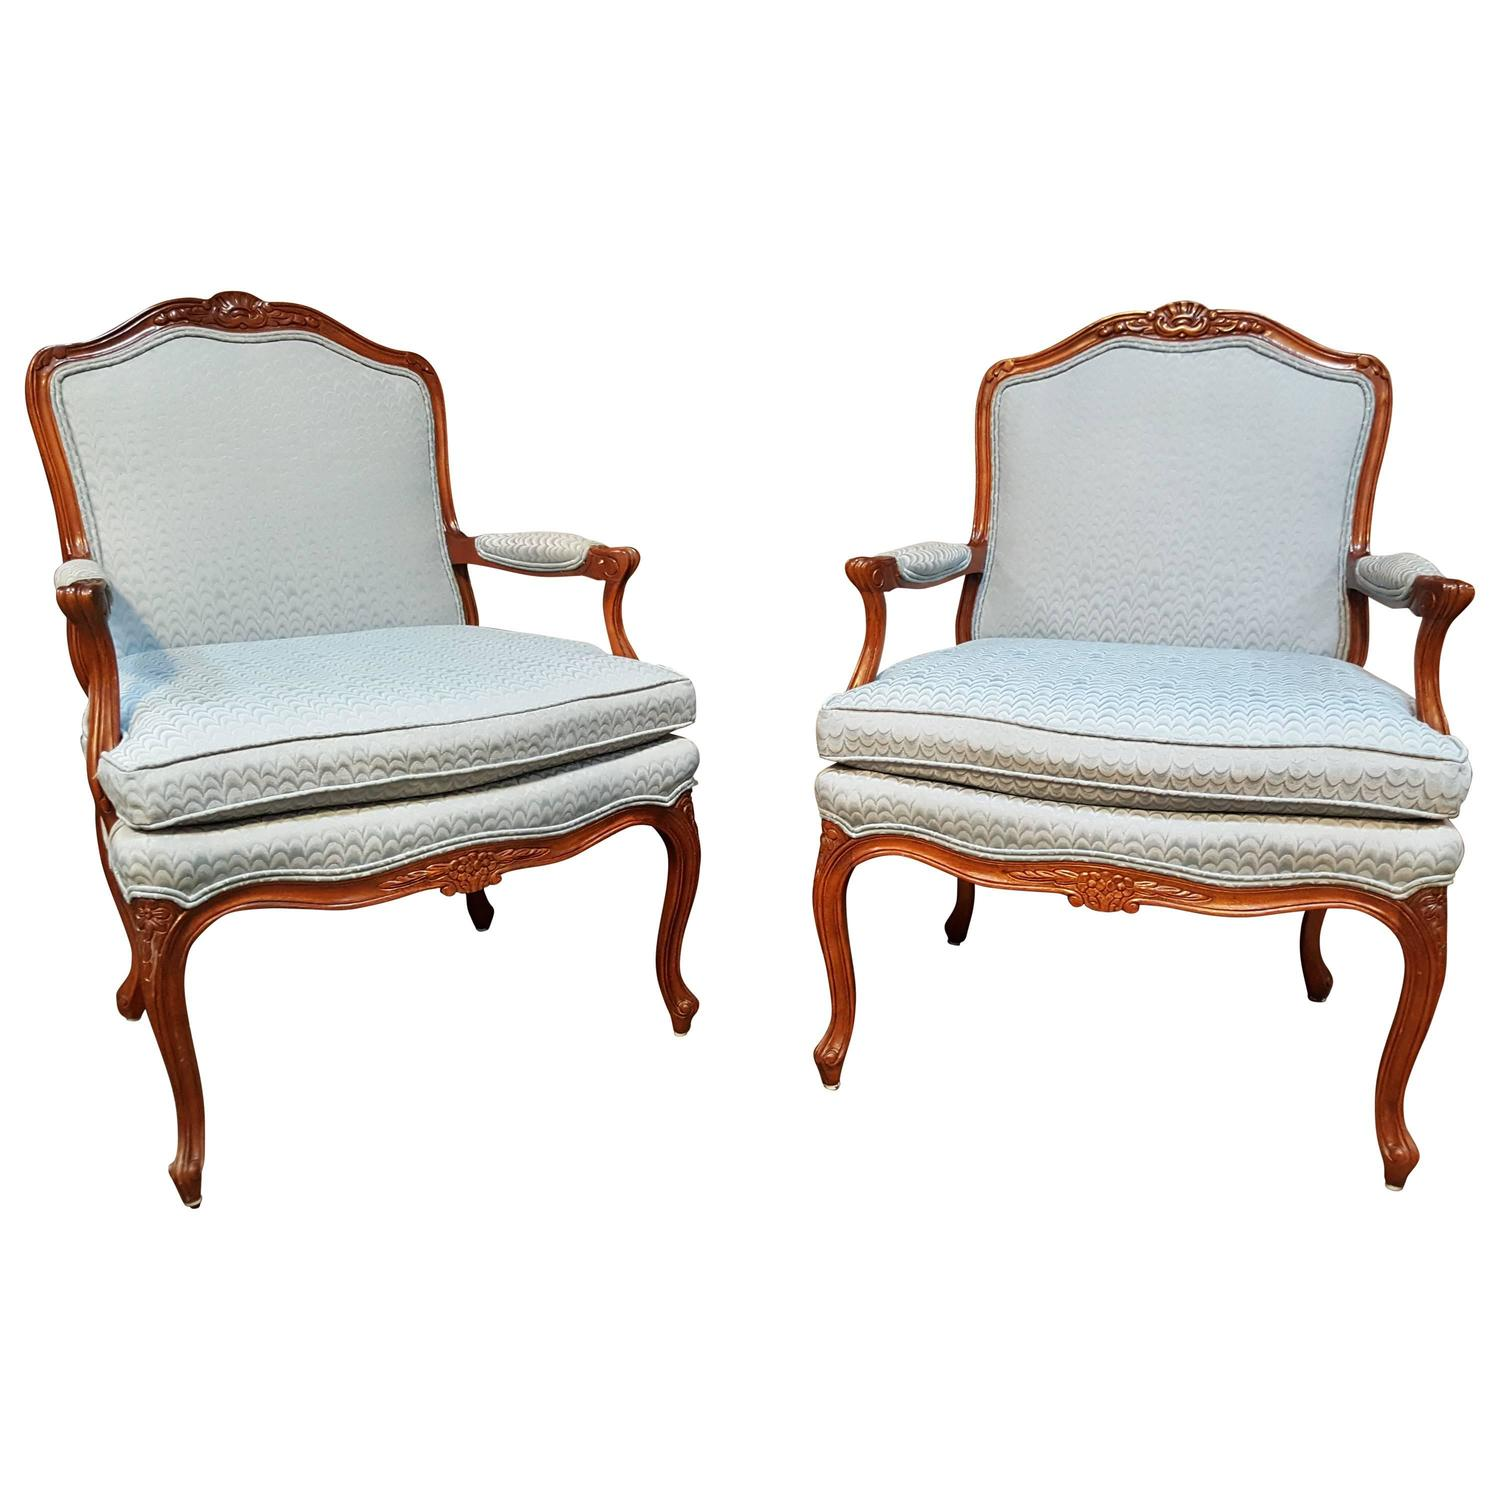 Pair Of Louis XV Style Bergere Lounge Chairs For Sale At